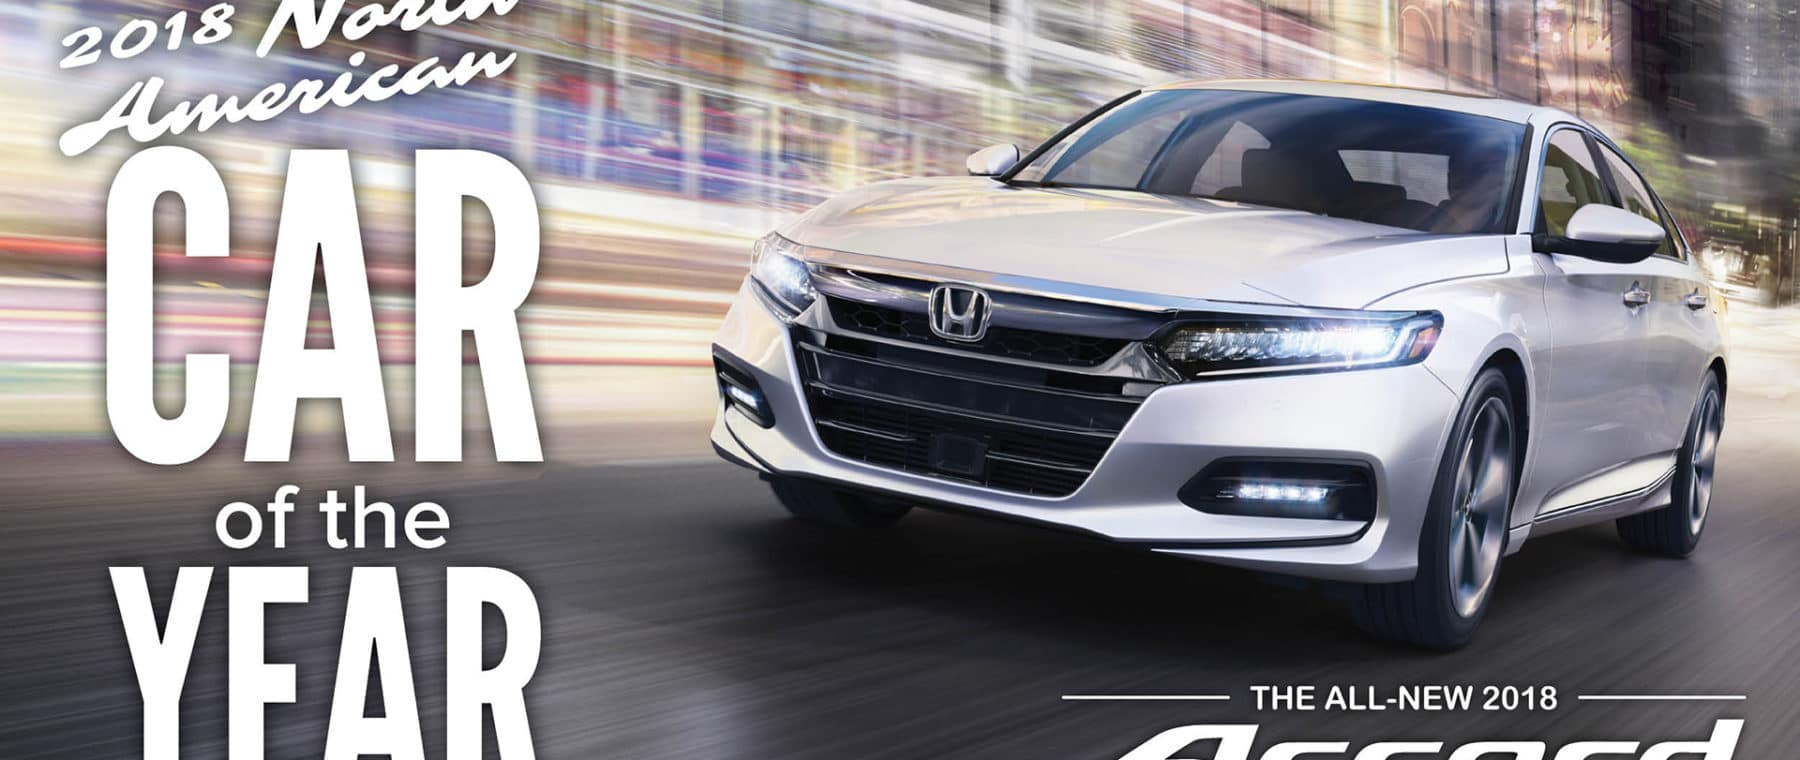 WETH-0118-NewCarSpecials-banner1